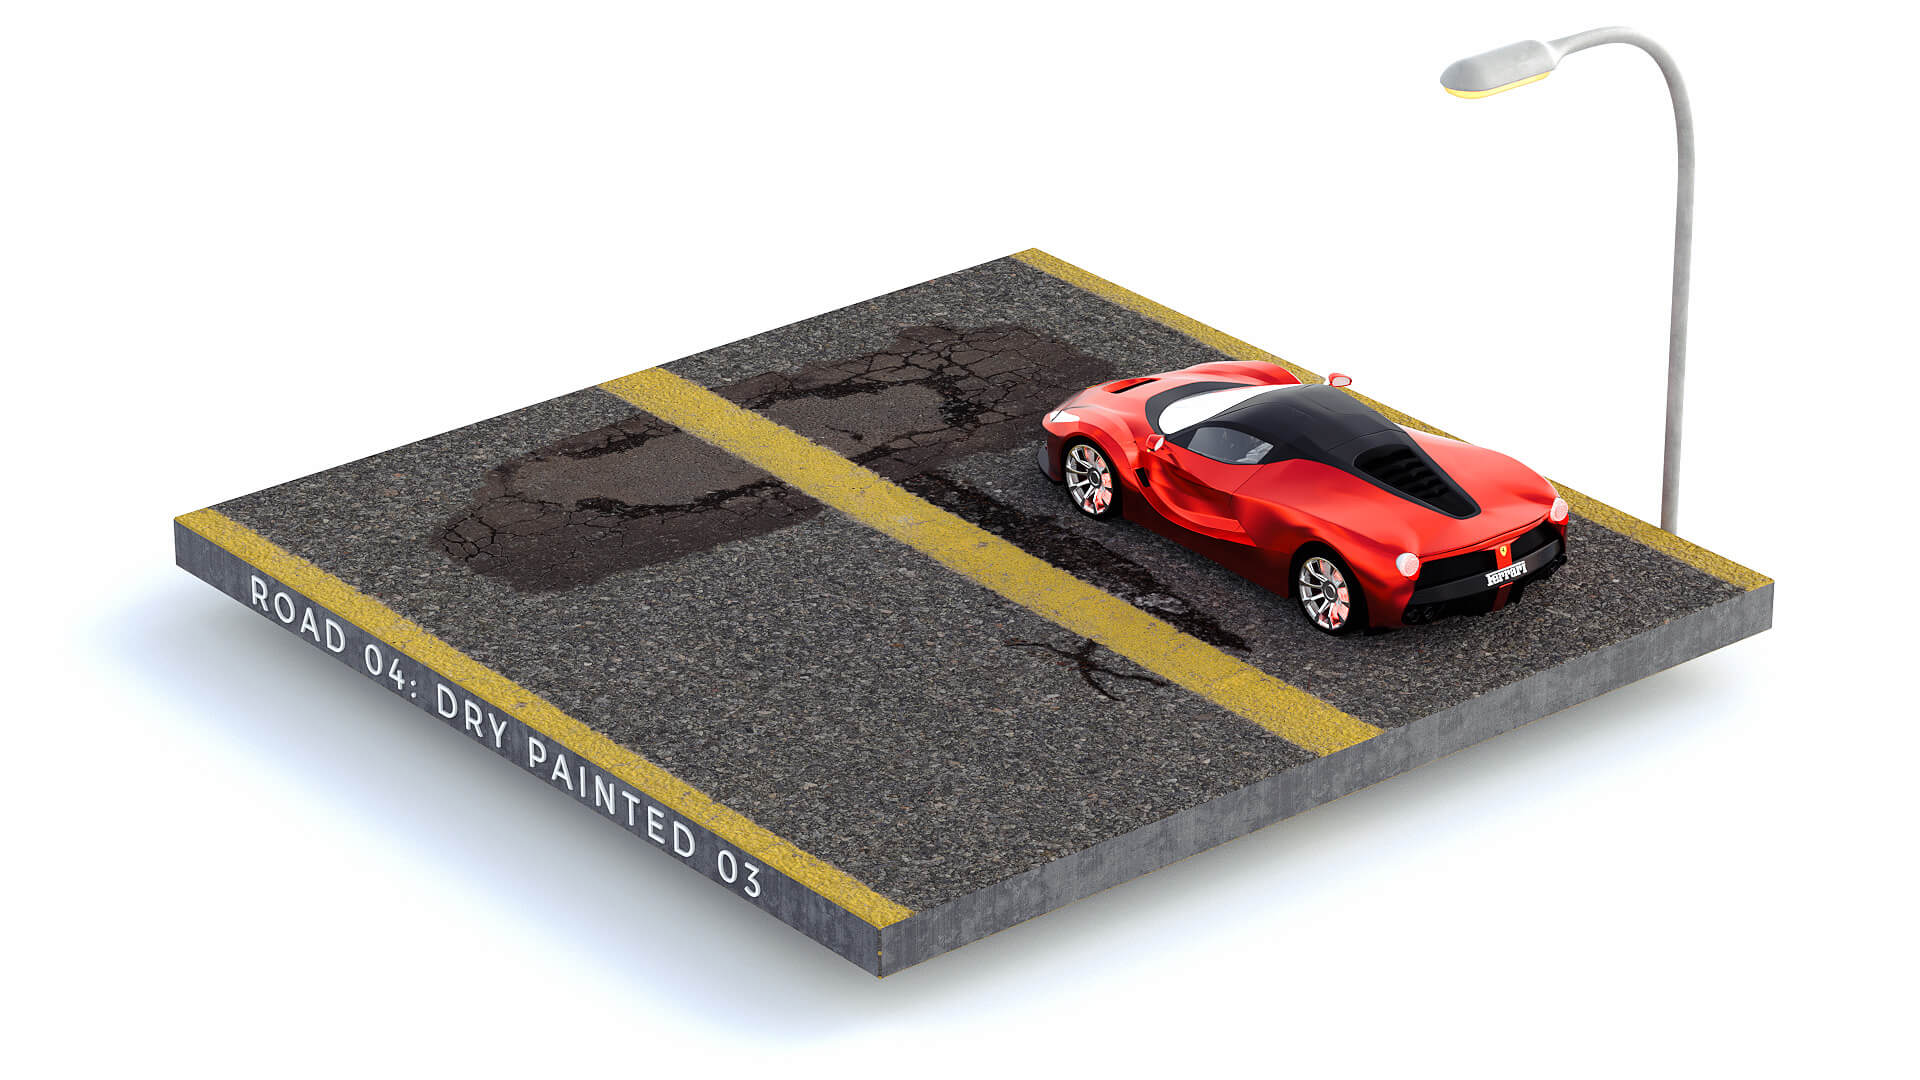 Cinema 4D 3D Streets Roads Textures Materials Dry Painted